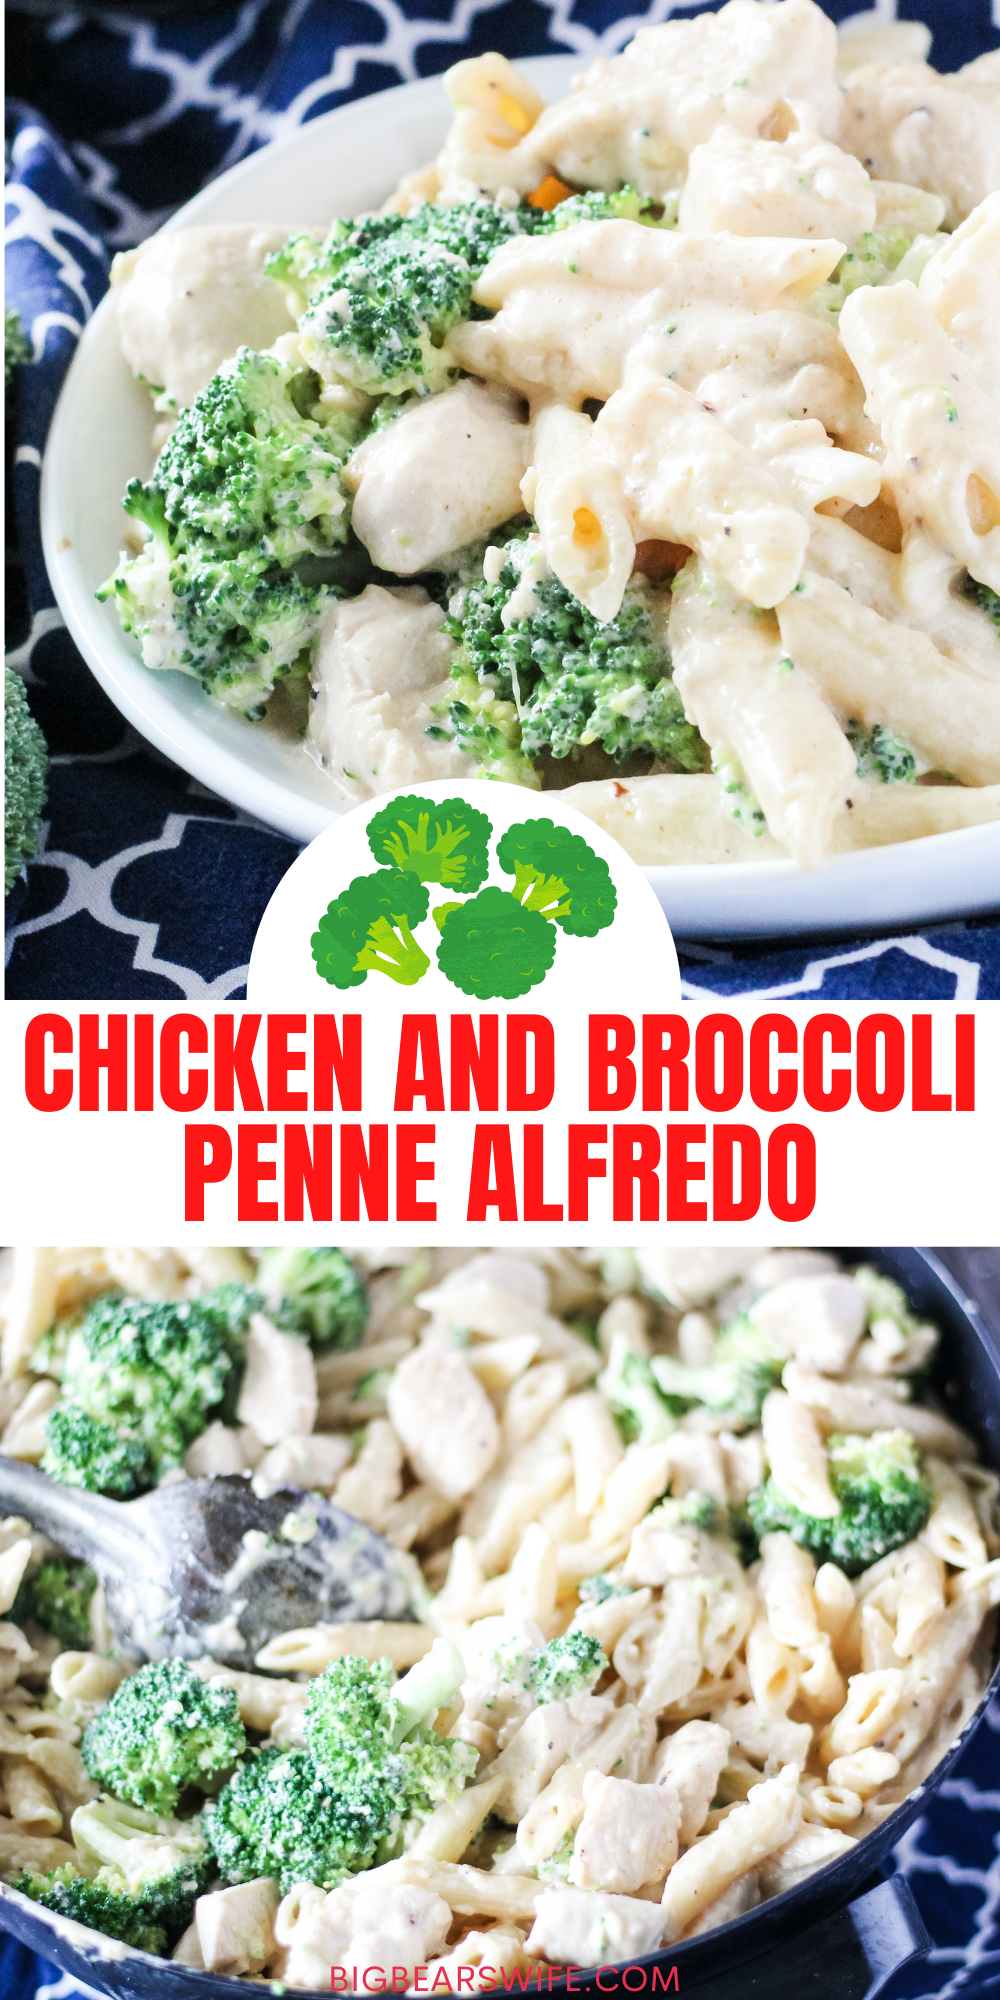 This Chicken and Broccoli Penne Alfredo is easy to whip up for dinner and delicious! This has been one of my most popular recipes for years!   via @bigbearswife